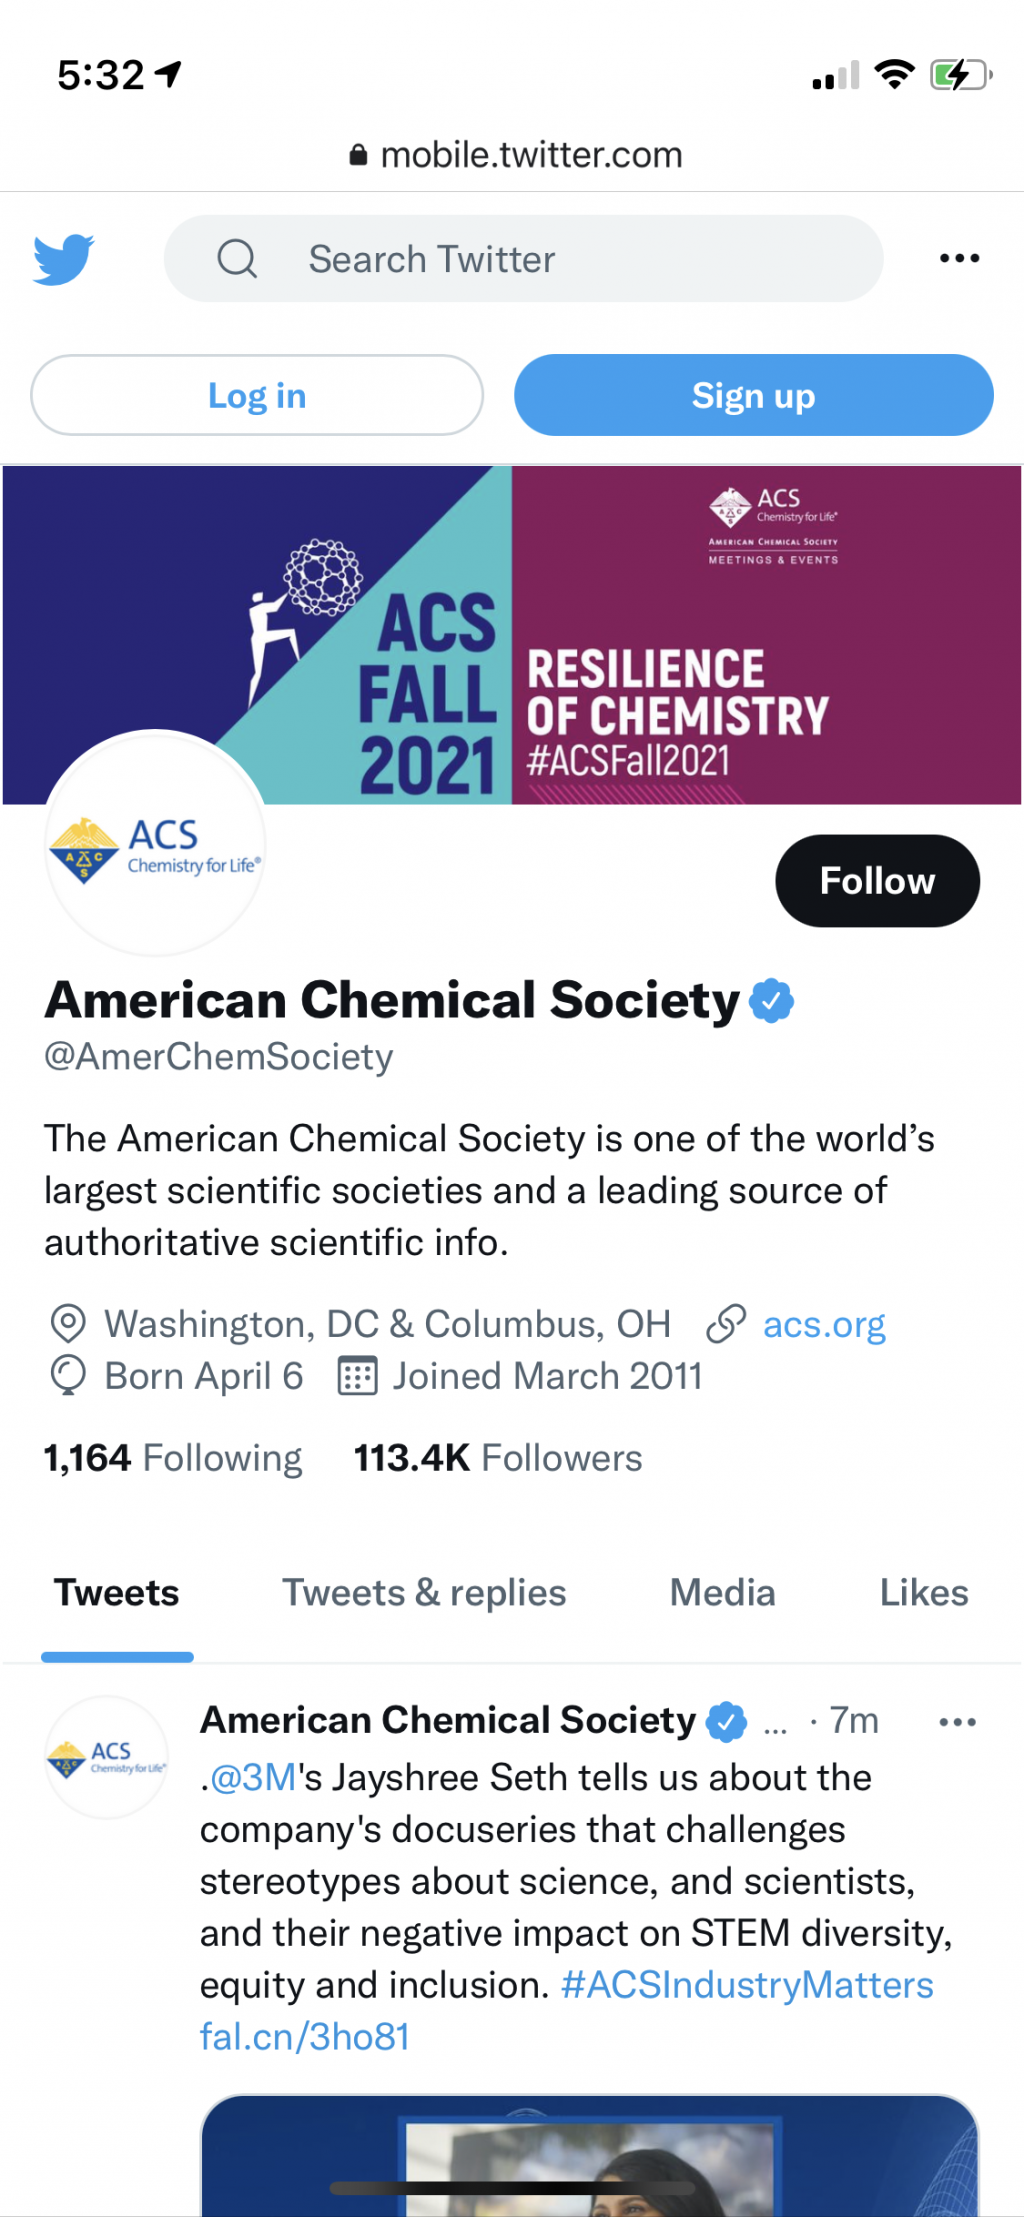 Live Twitter screenshot of a branded page cover.